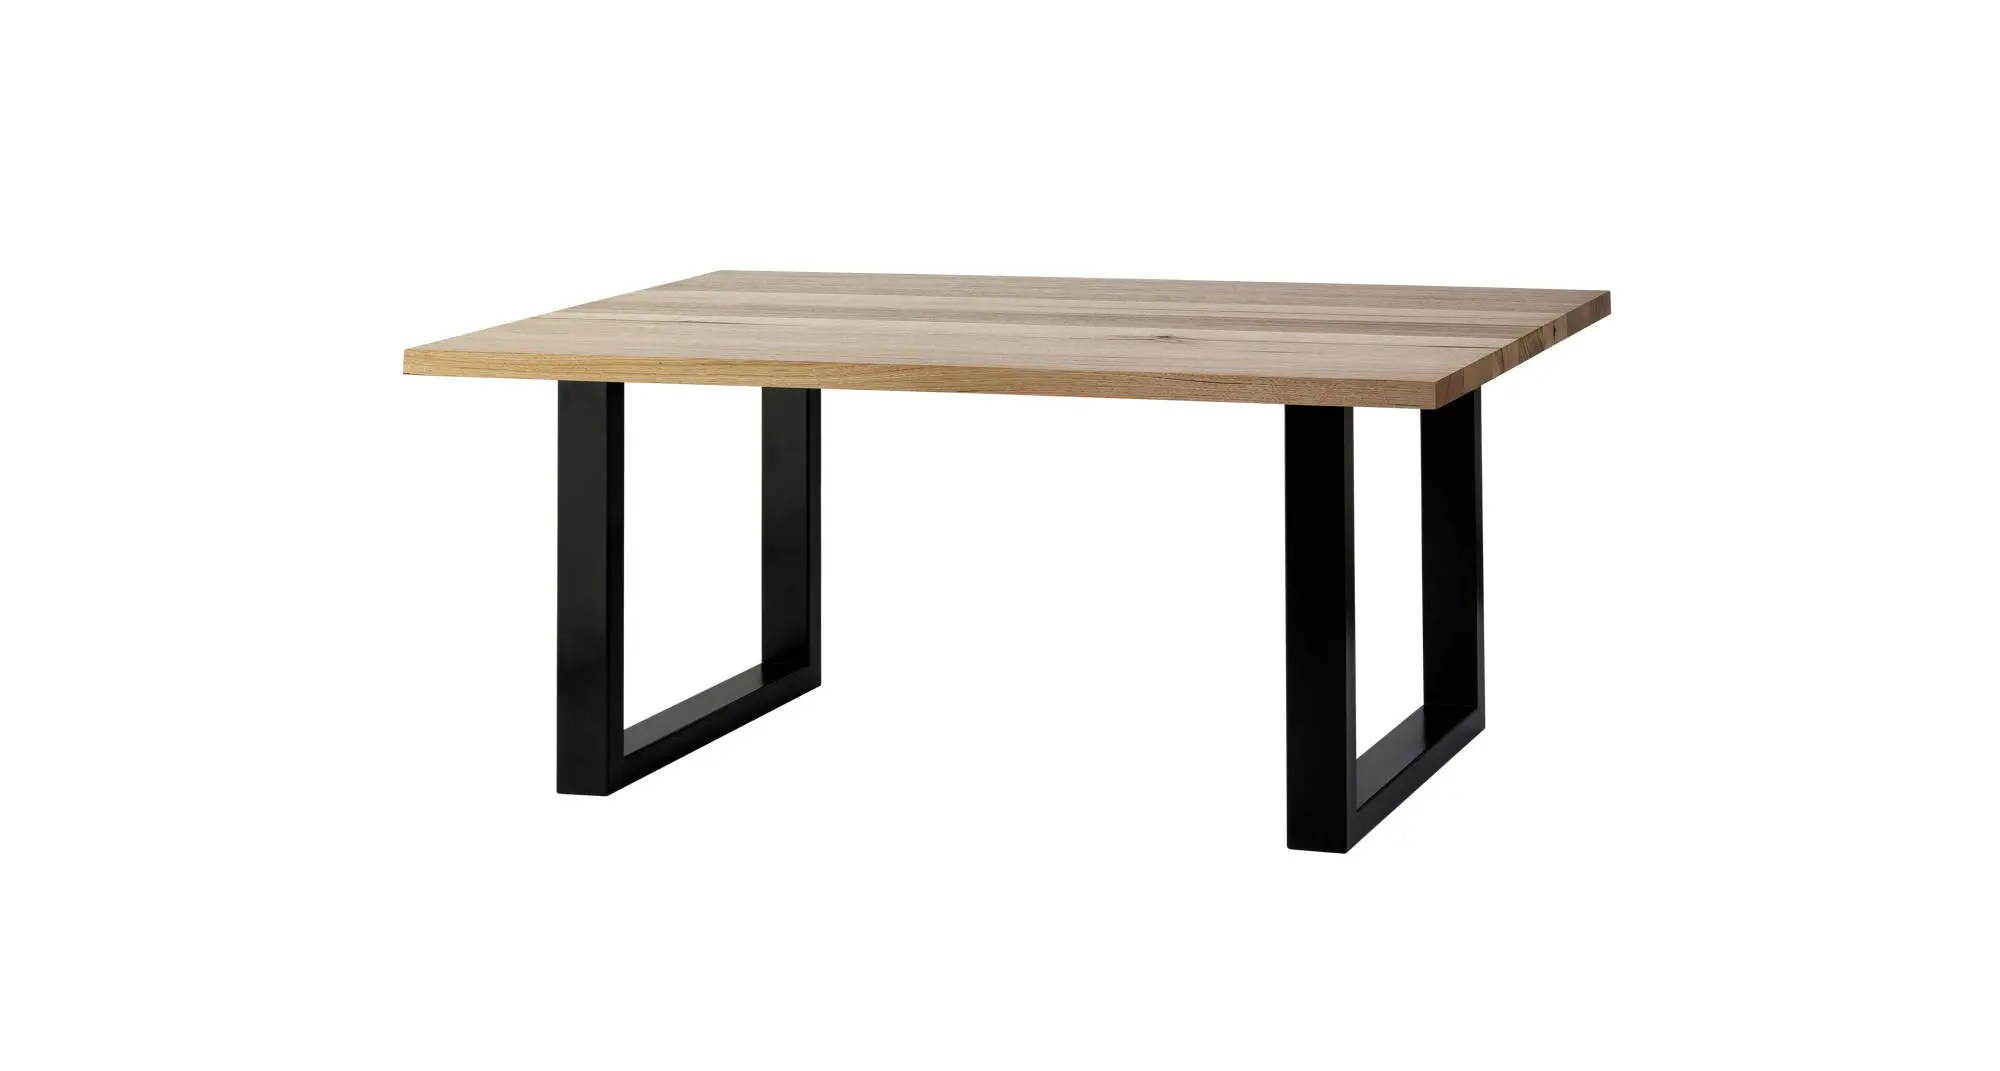 Hairpin Legs Melbourne Brighton Reclaimed Messmate Table With Chunky Square Frame Table Legs